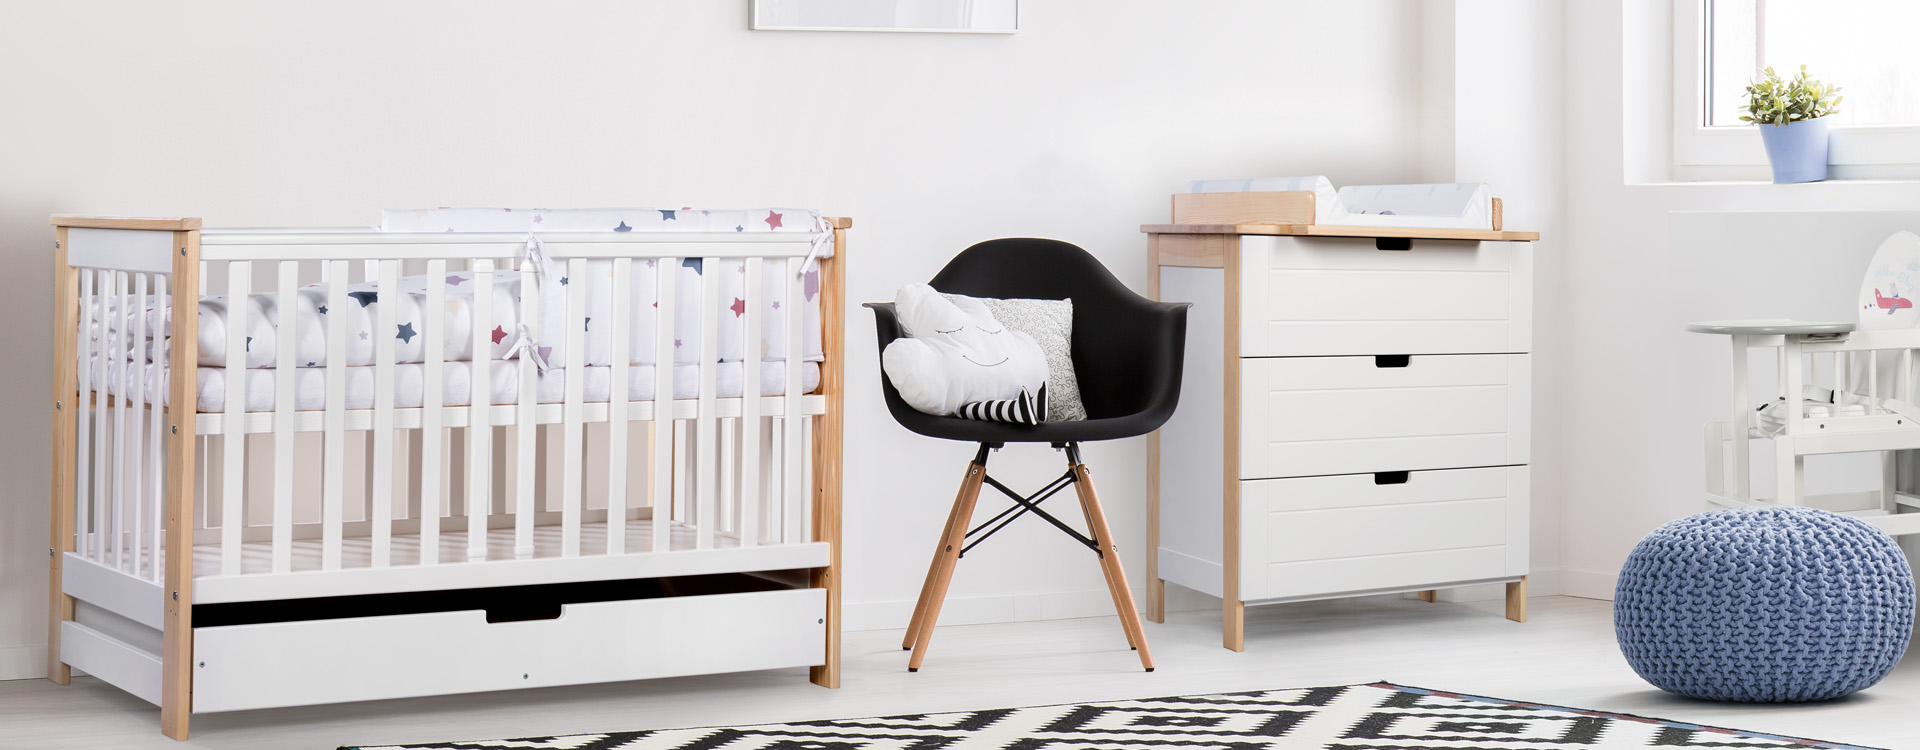 Wooden furniture for children from Poland